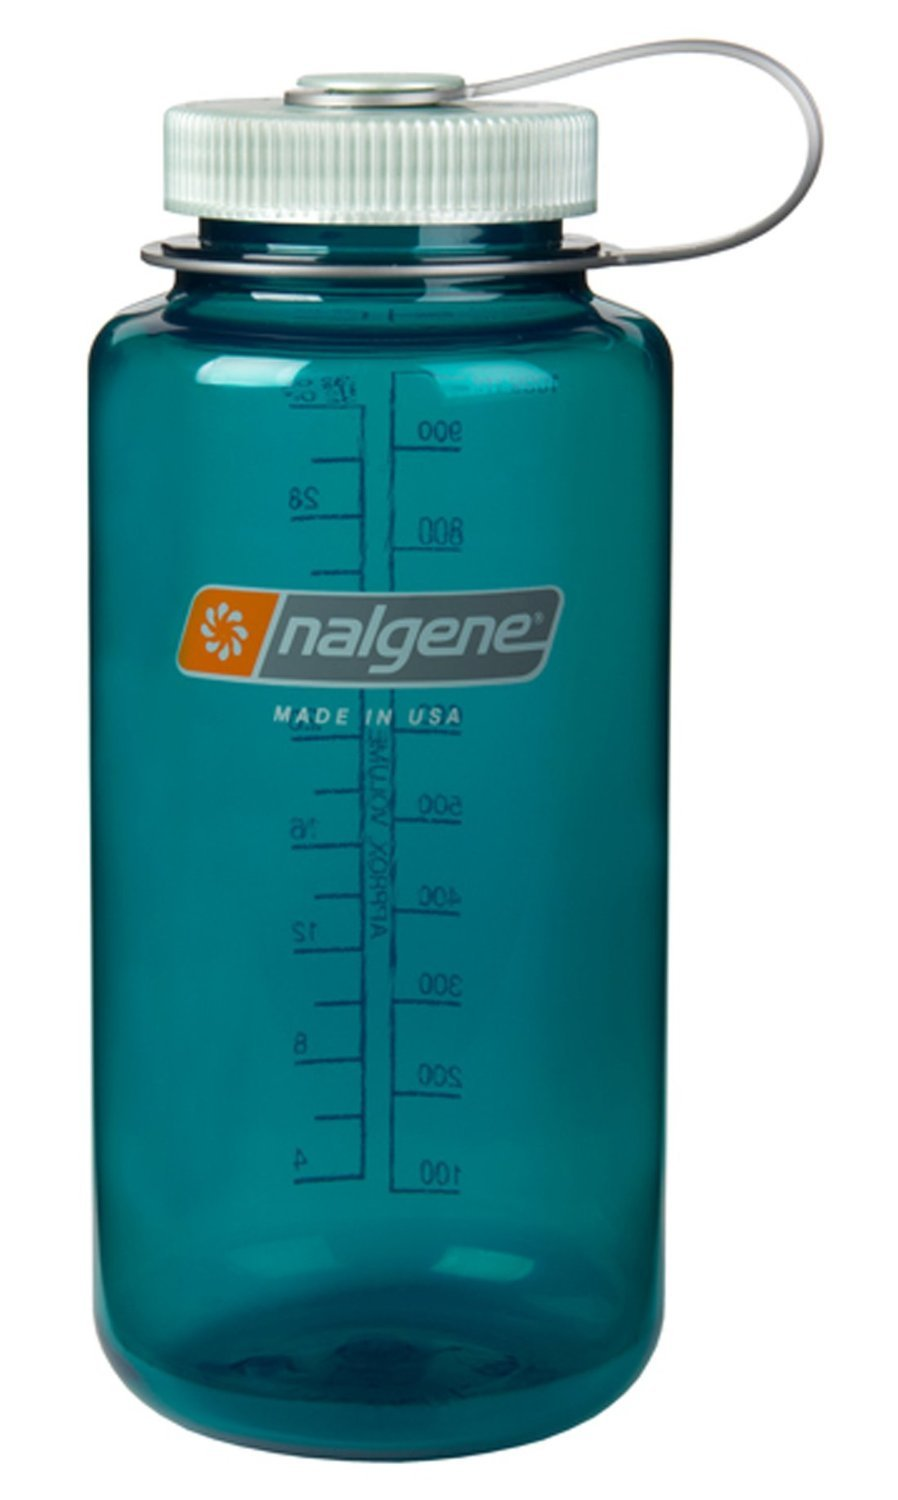 Trout Green w  Silver Top Nalgene Everyday Triton Wide Mouth 32oz Bottle  2 Pack